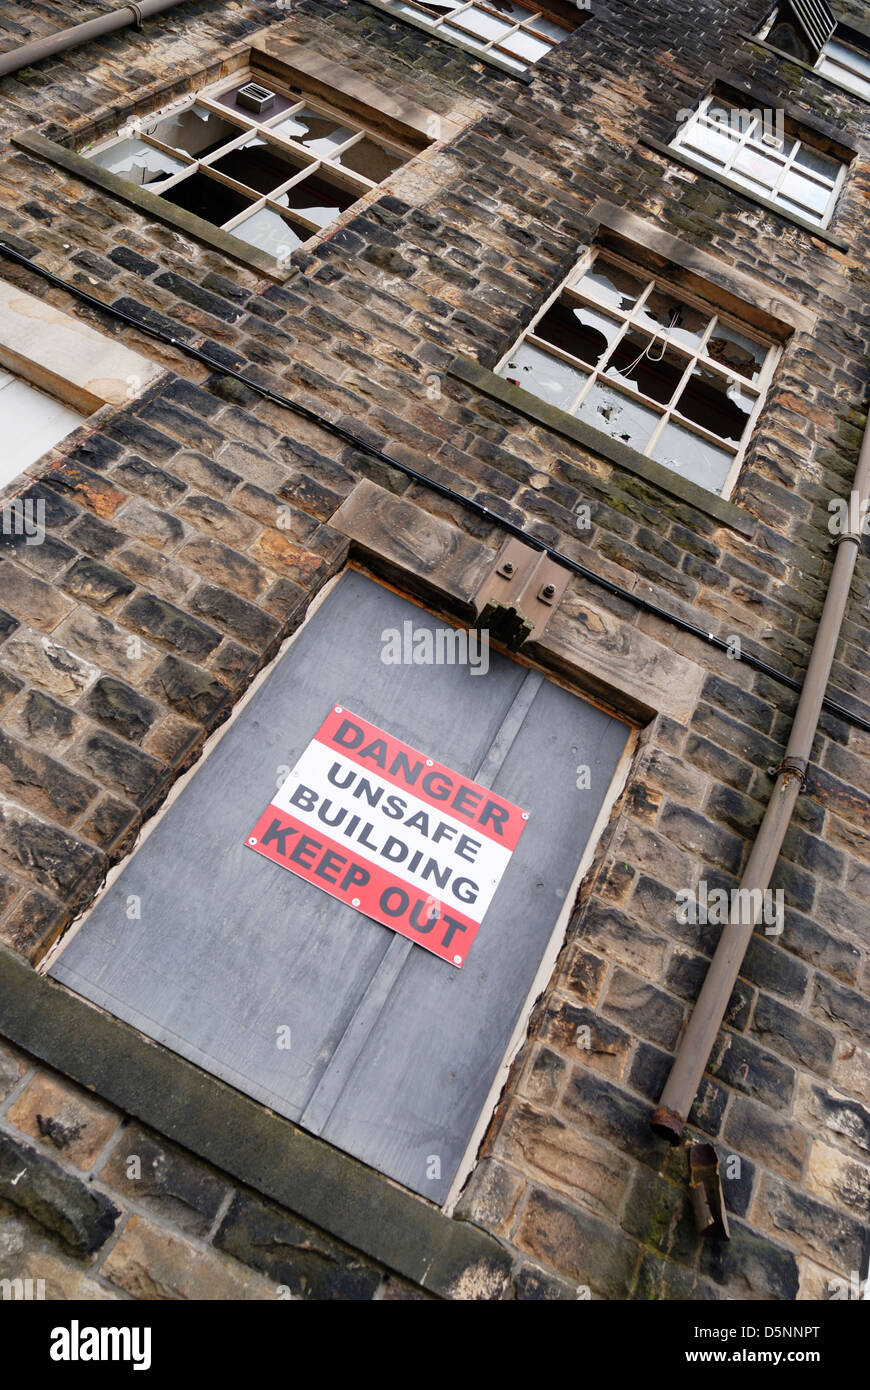 Danger unsafe building keep out sign on a disused mill building in Lancashire, England. - Stock Image